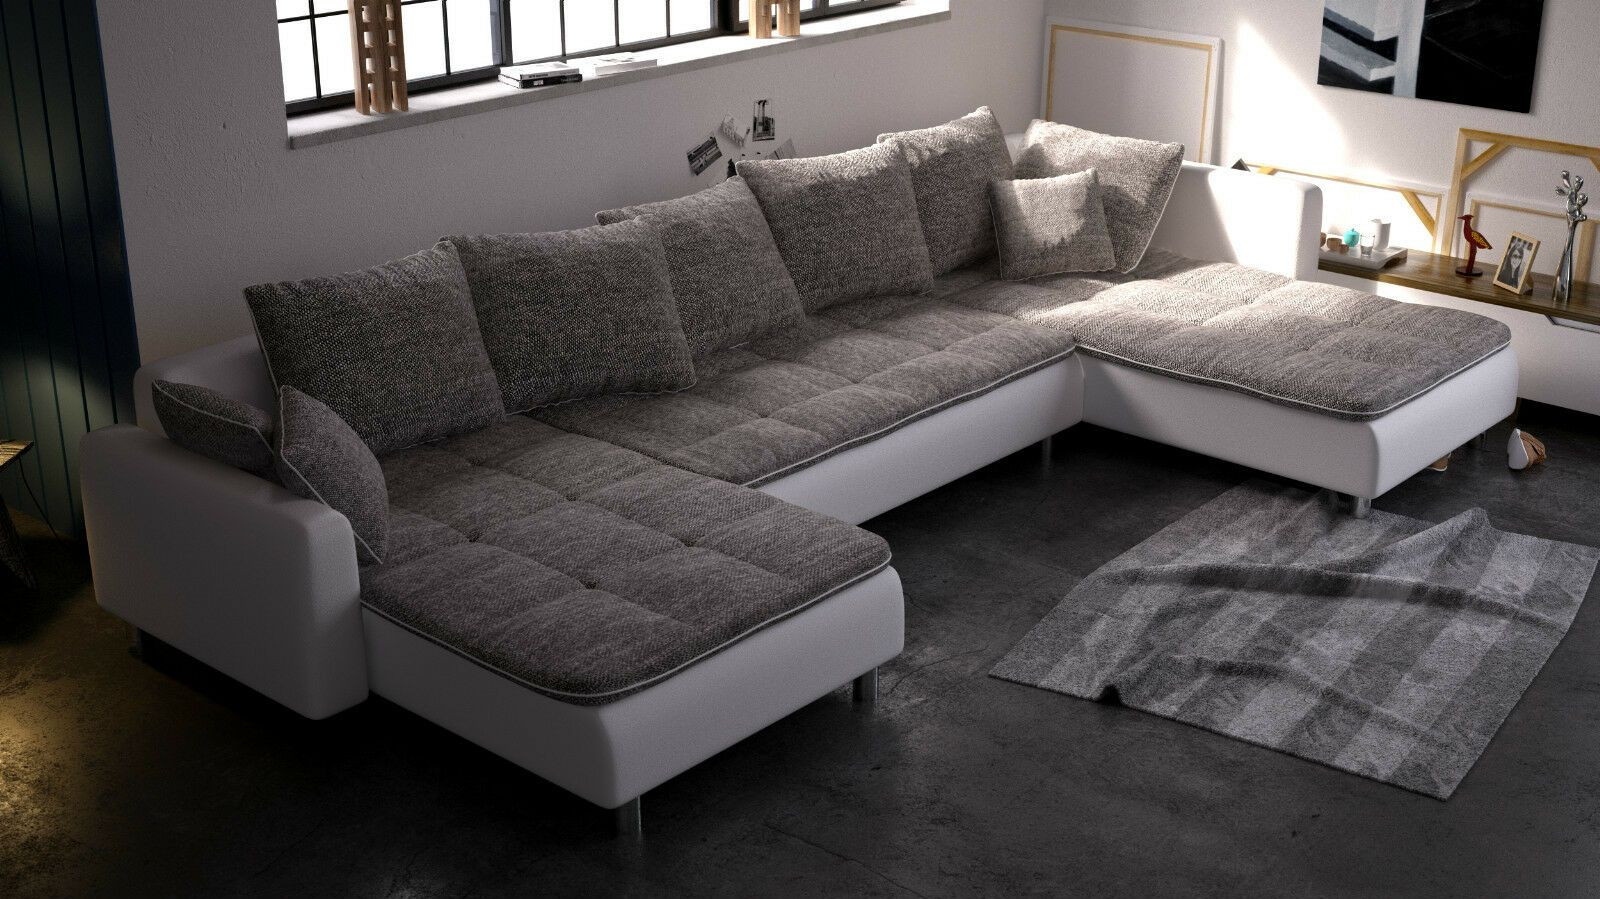 Grey Couch With Chaise And Recliner Variant Living In 2020 Living Room Sofa Set Couch With Chaise Couch